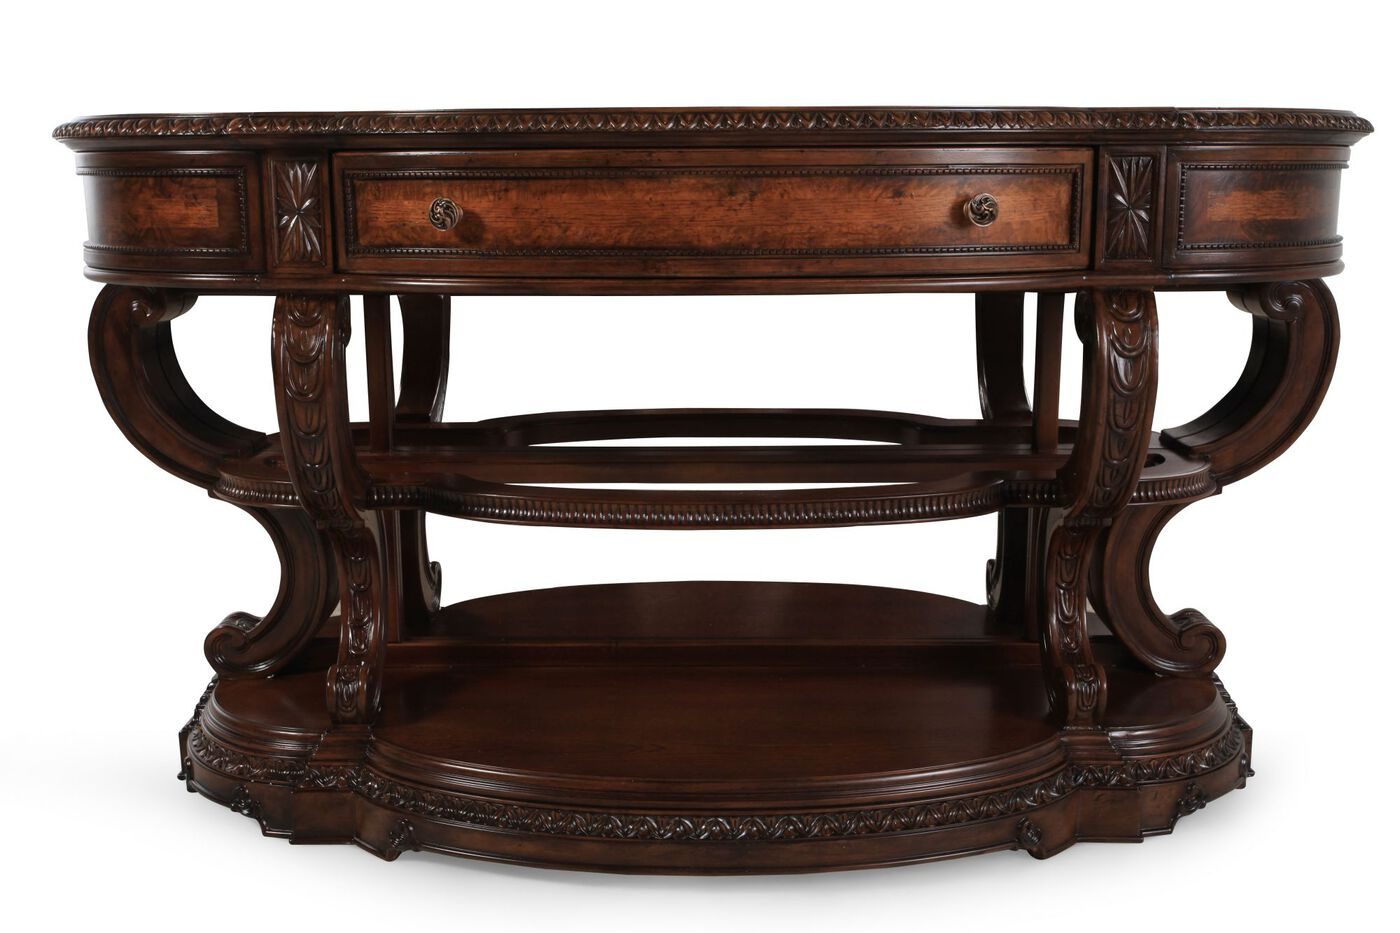 Serpentine front traditional console table in burnished Traditional console tables living room